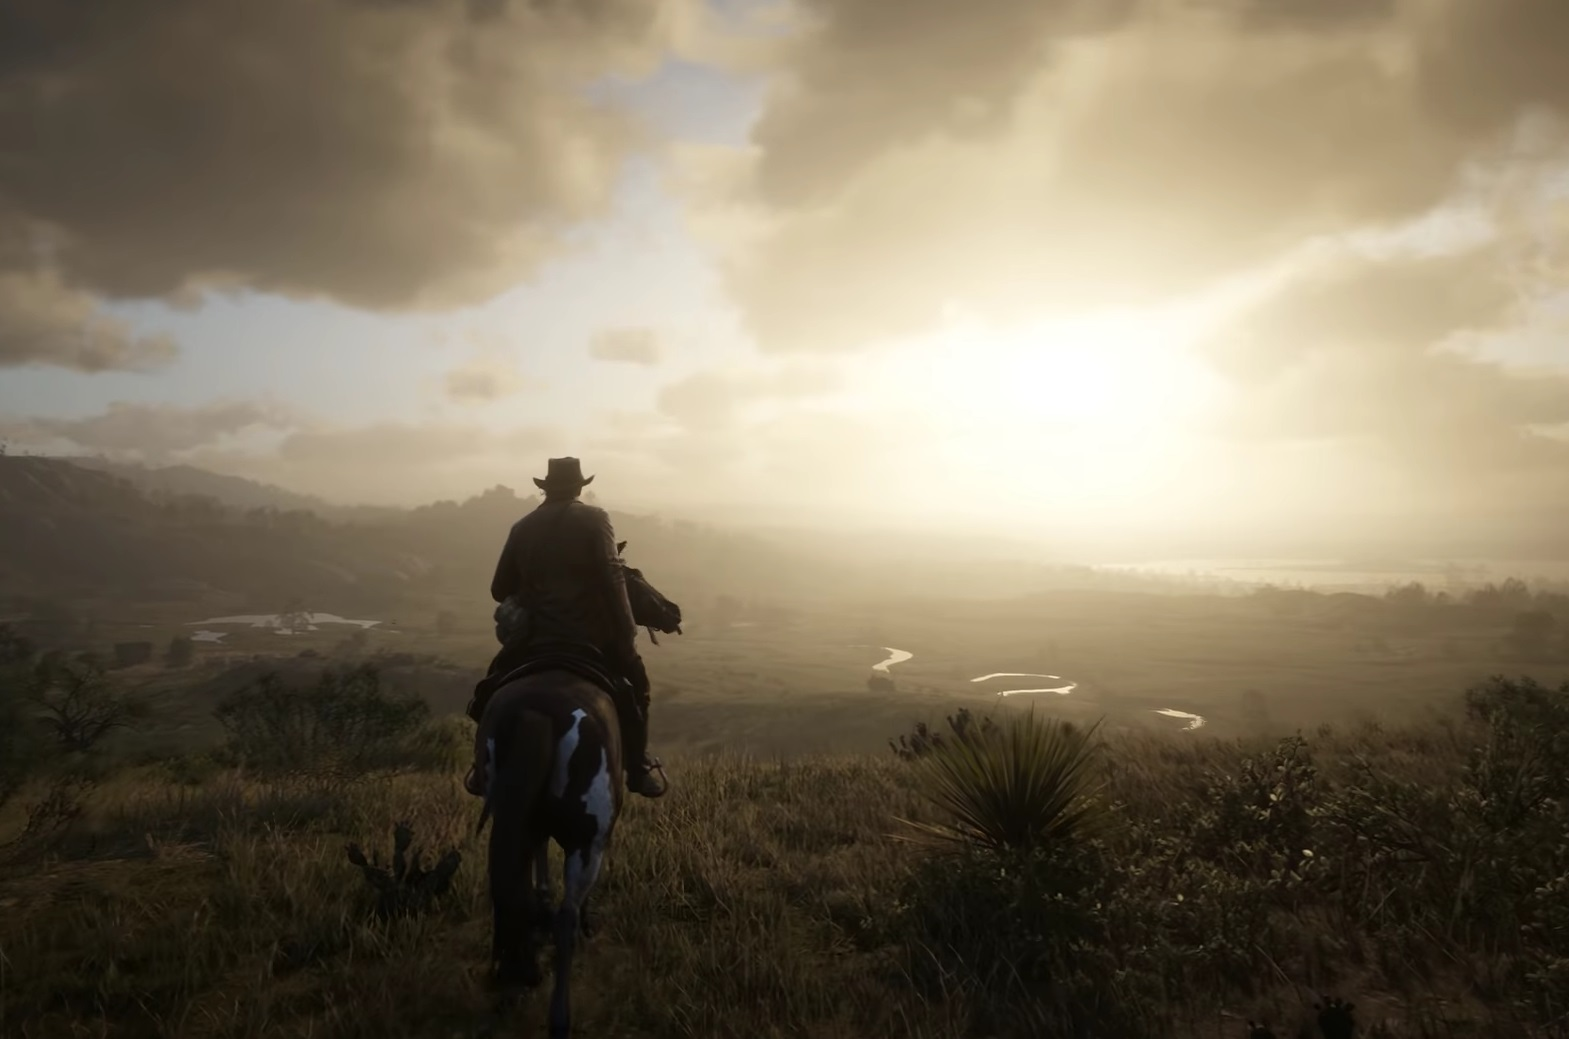 Red Dead Redemption 2 sees Rockstar raising the bar for realism in